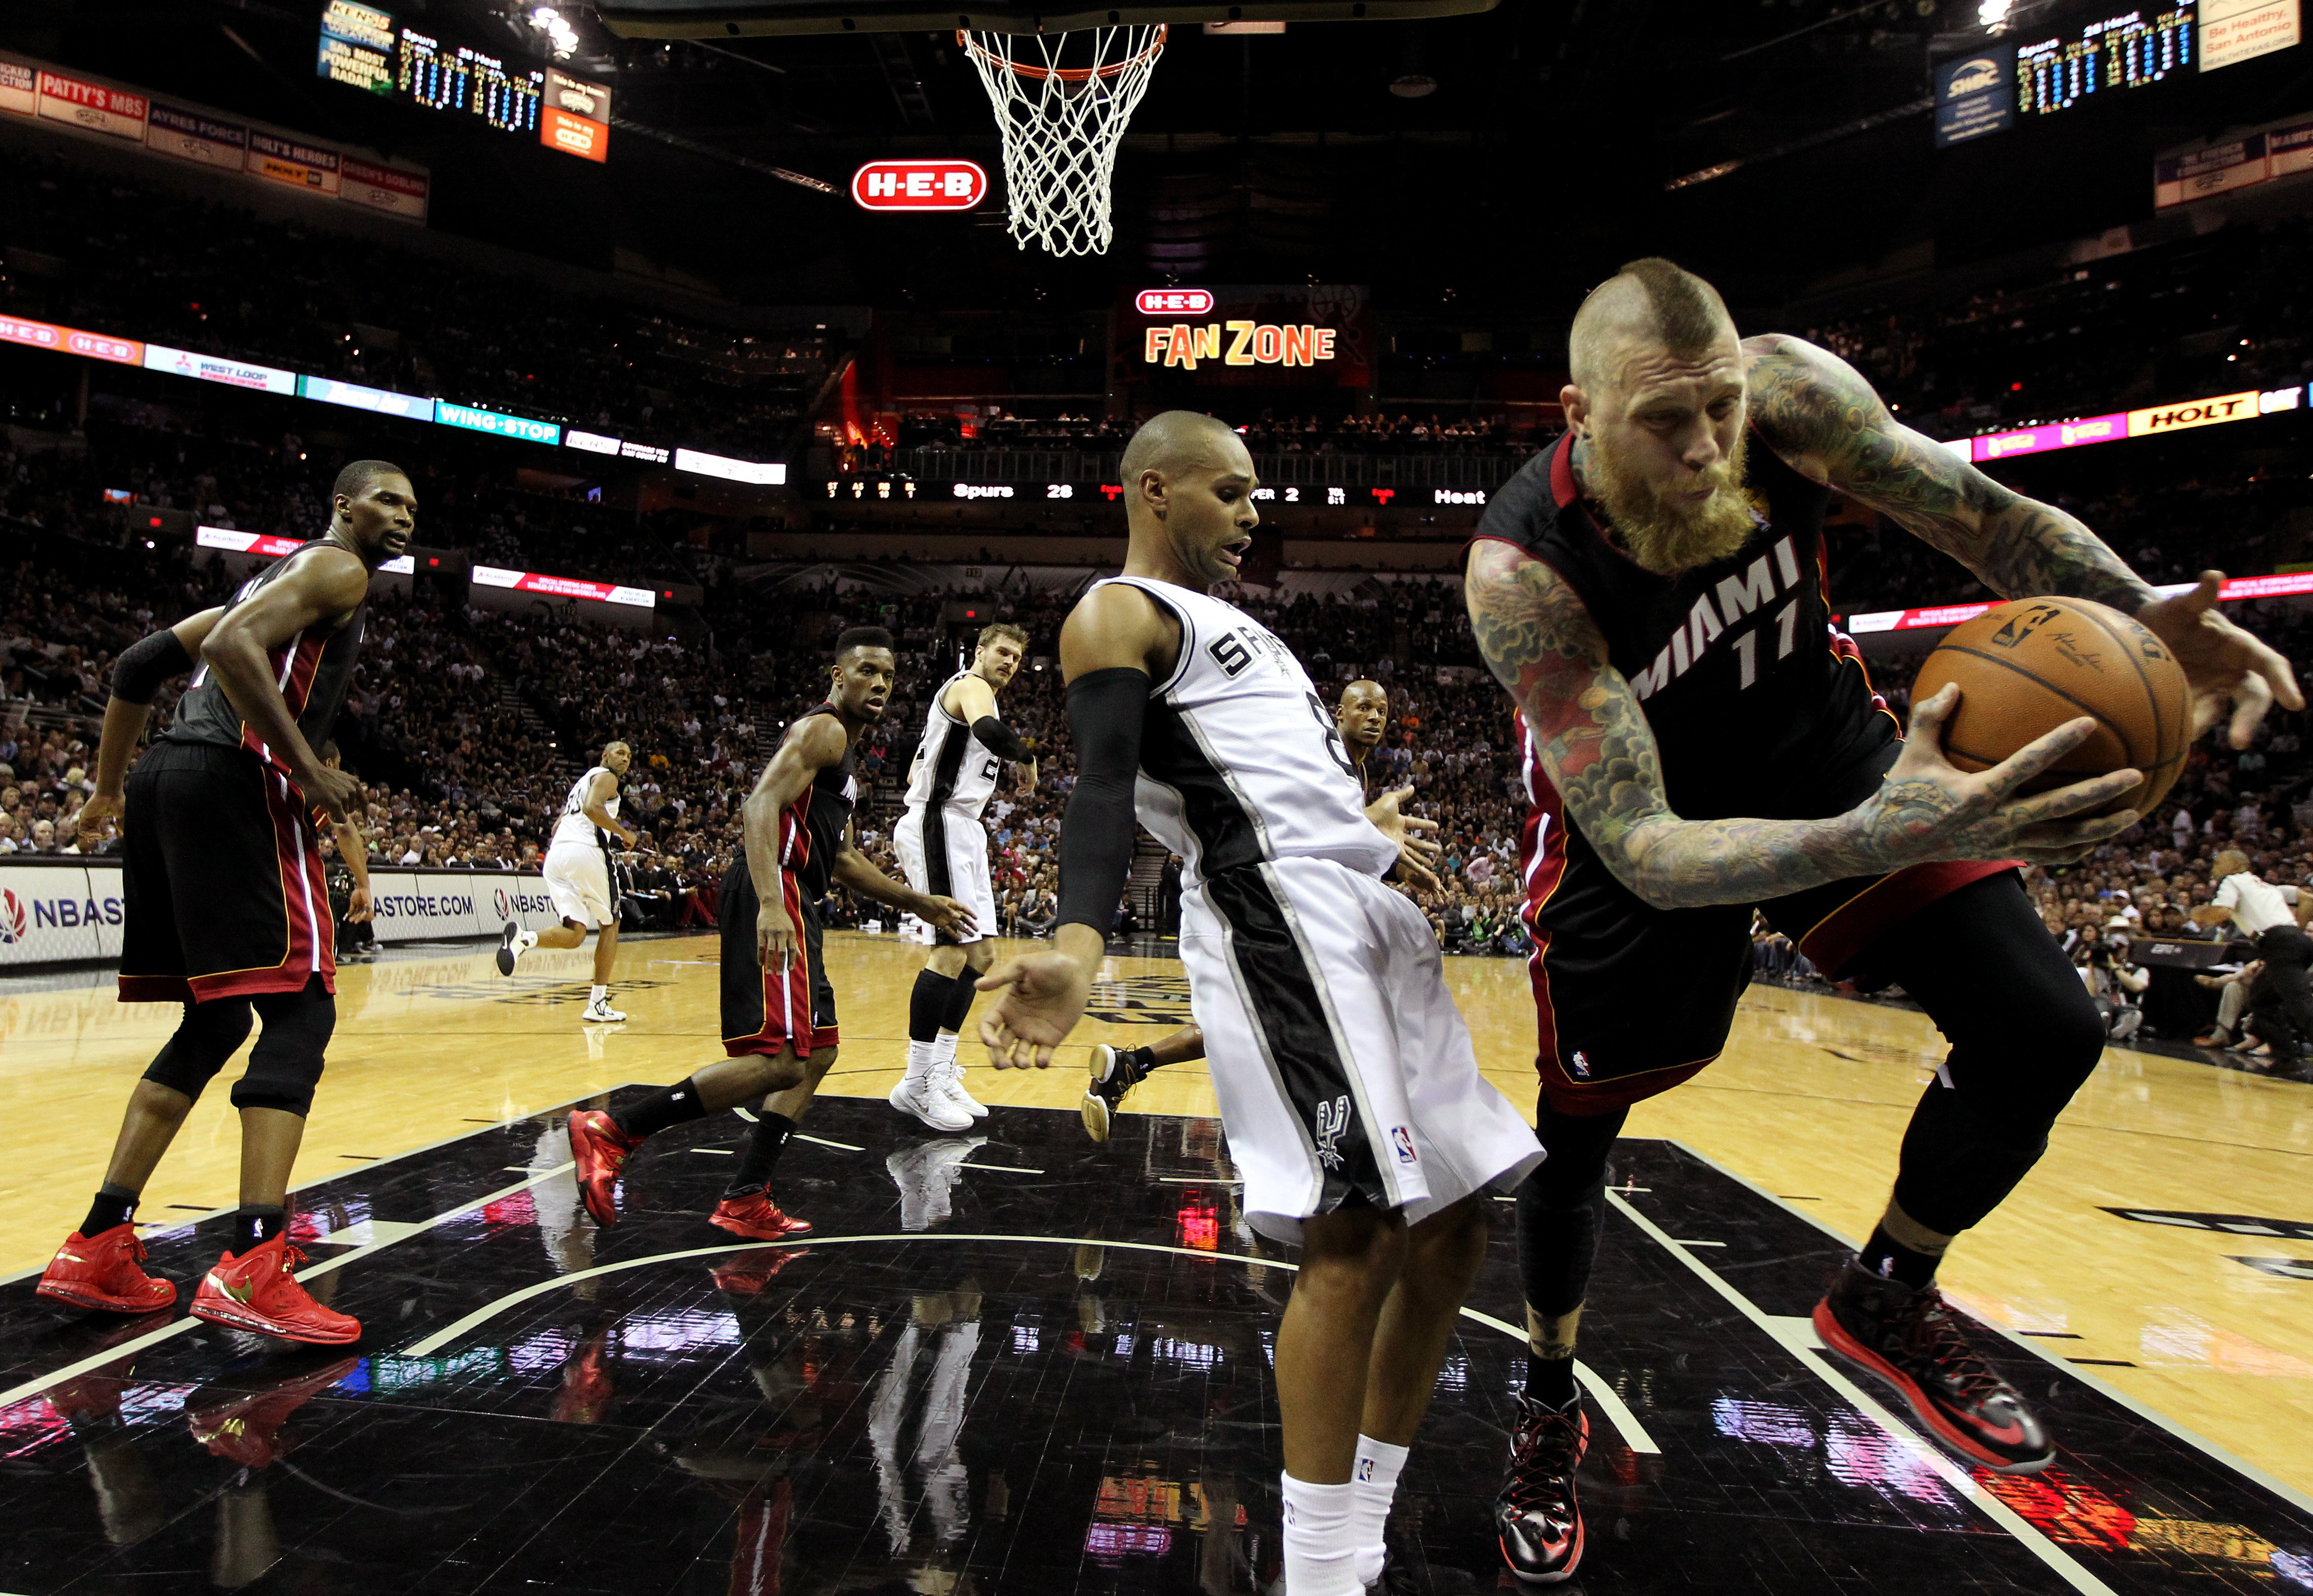 Patty Mills #8 of the San Antonio Spurs and Chris Andersen #11 of the Miami Heat battle for a loose ball during Game 2 of the 2014 NBA Finals in San Antonio on June 8, 2014.